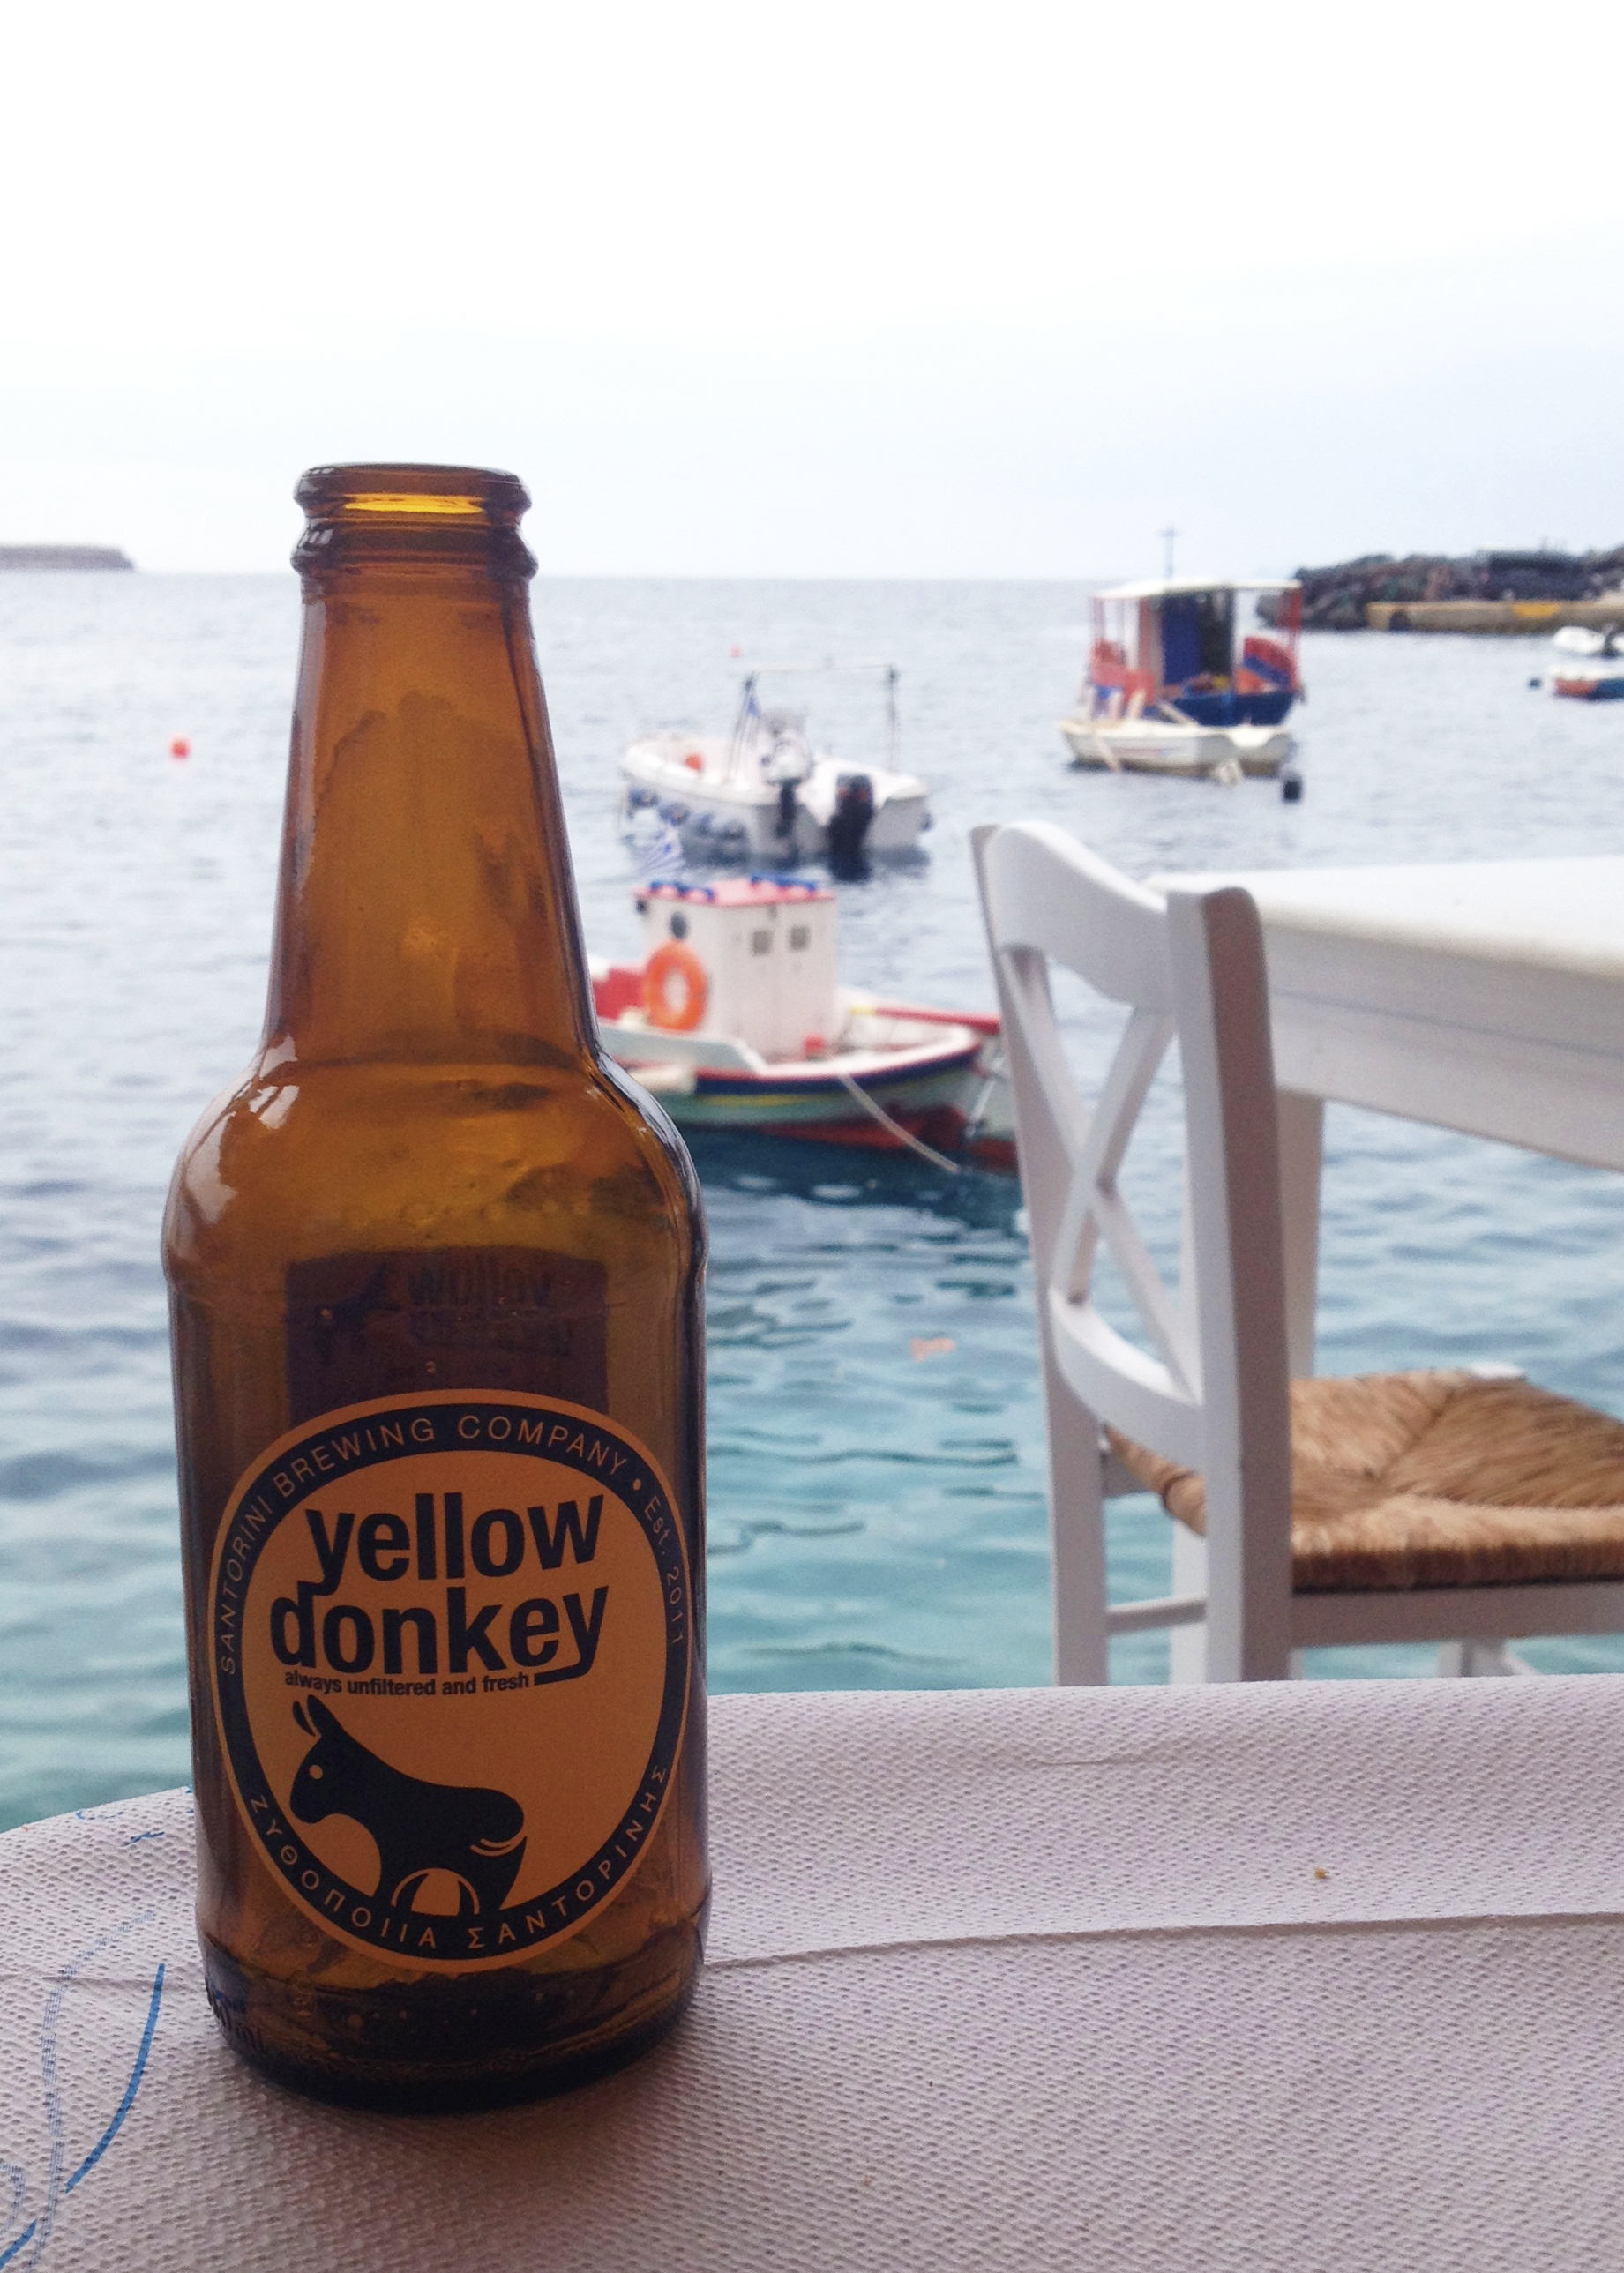 Yellow donkey beer. Mitch had the Red Donkey which was hoppier.